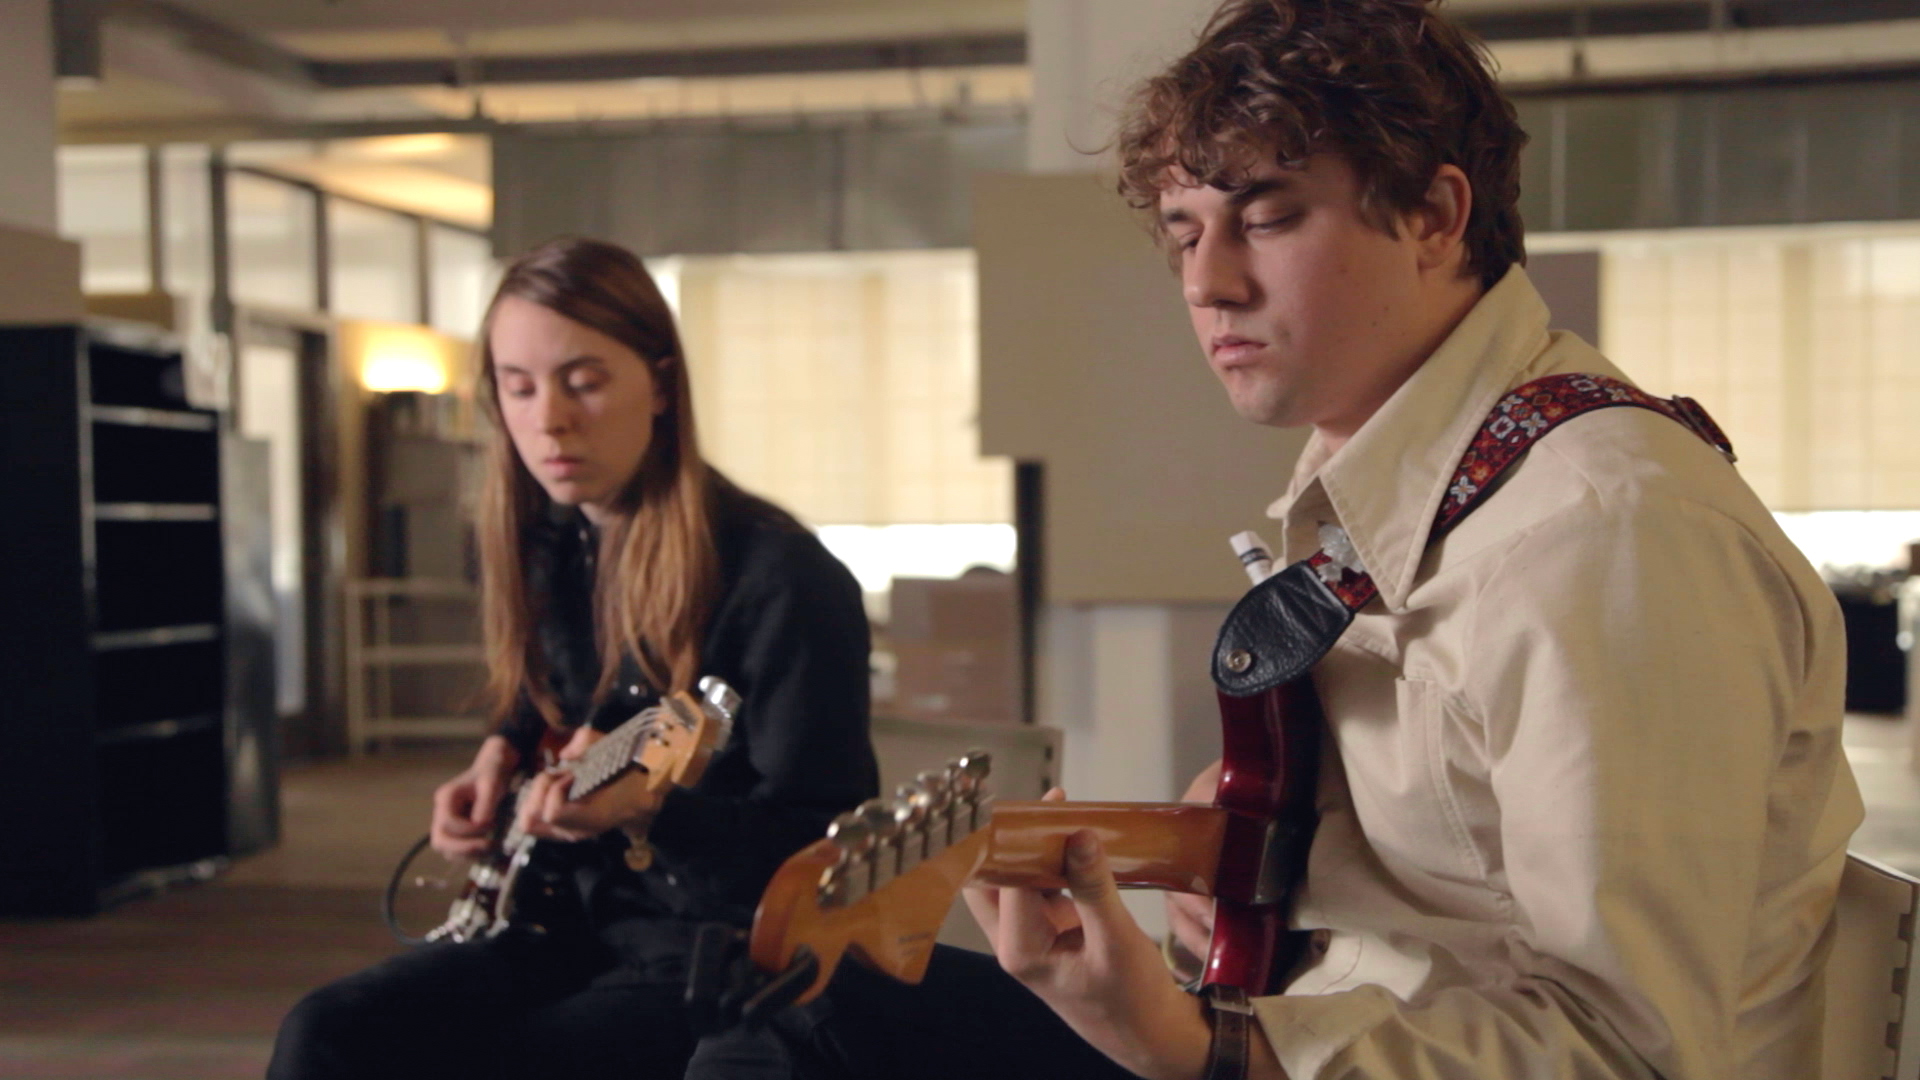 Kevin Morby plays Time Out Live